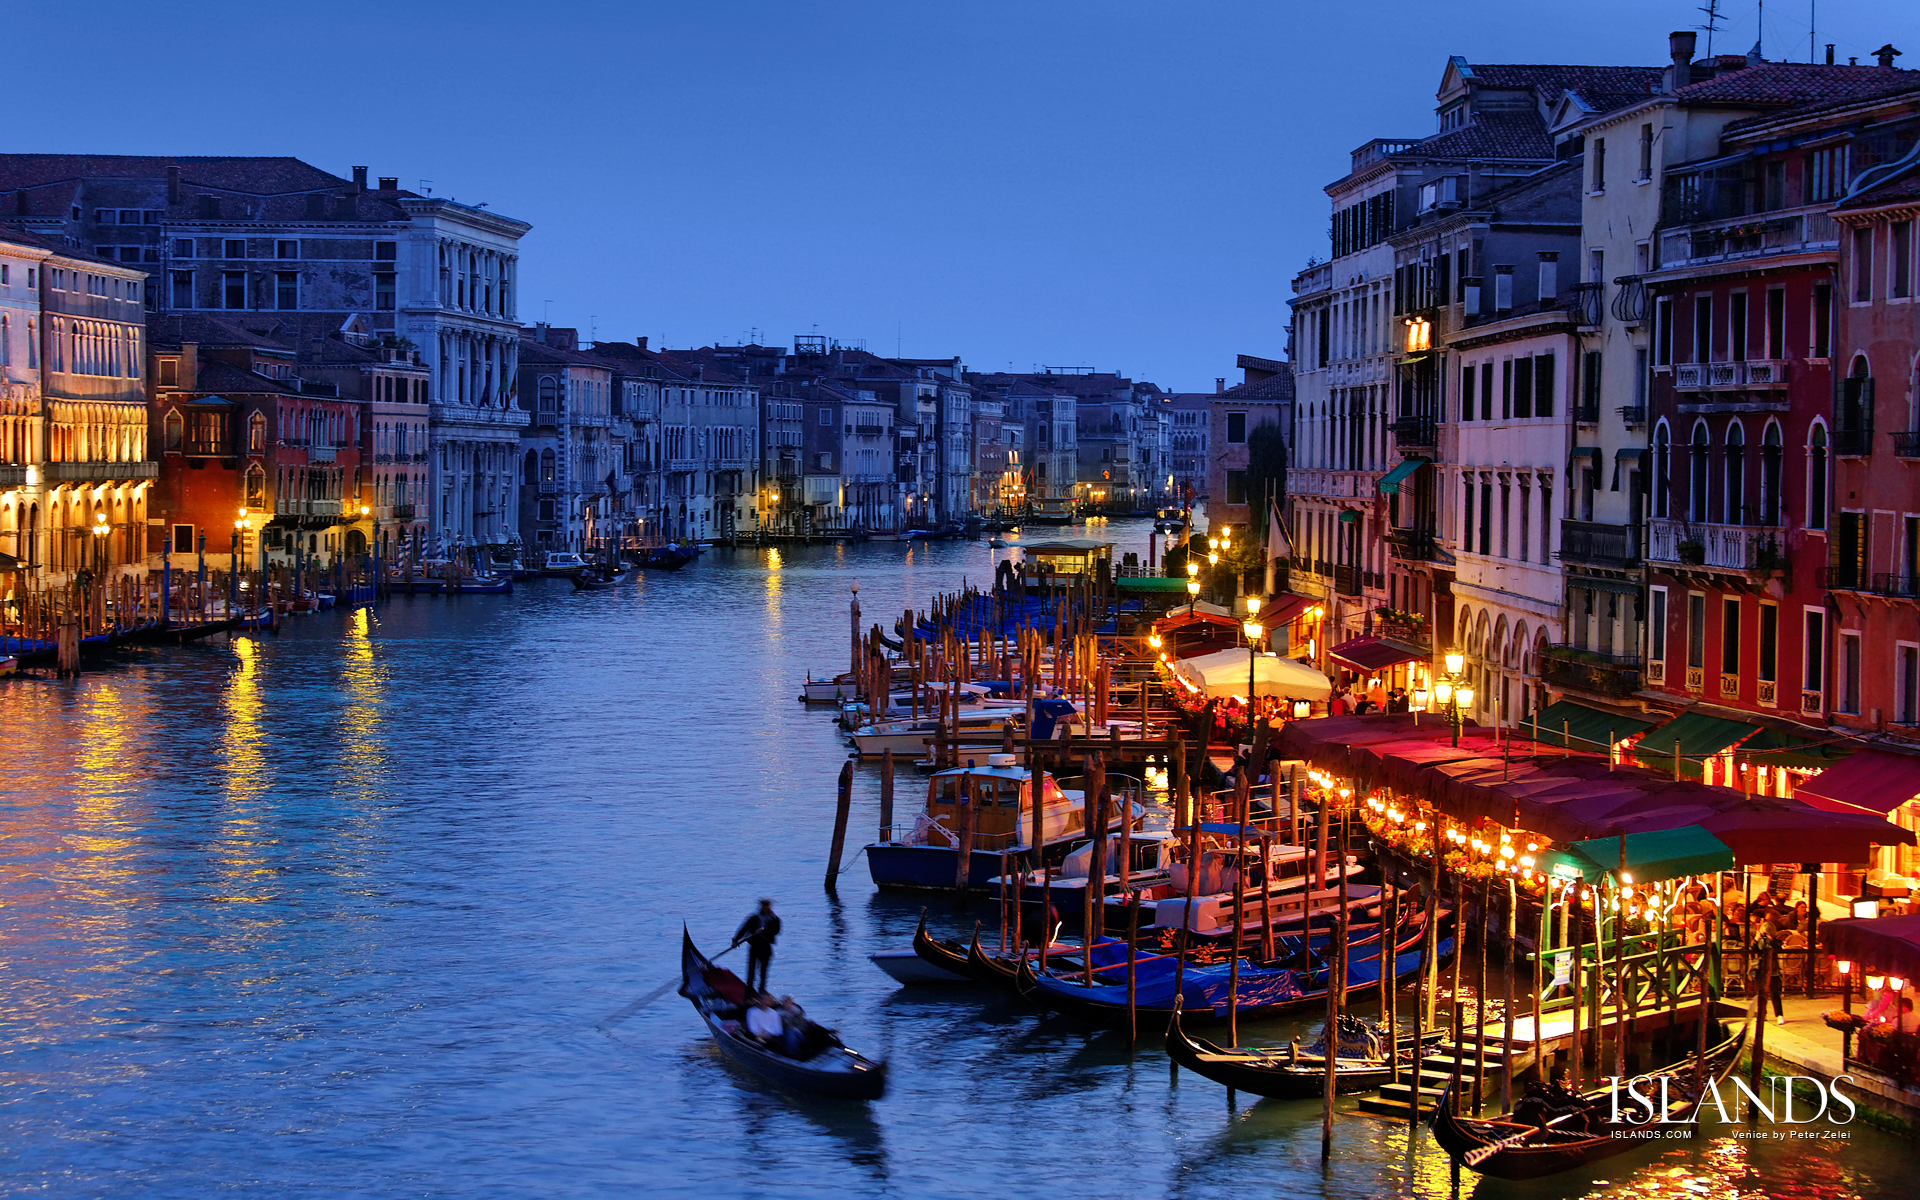 Venice Italy Wallpaper Desktop PC Wallpaper with 1920x1200 Resolution 1920x1200